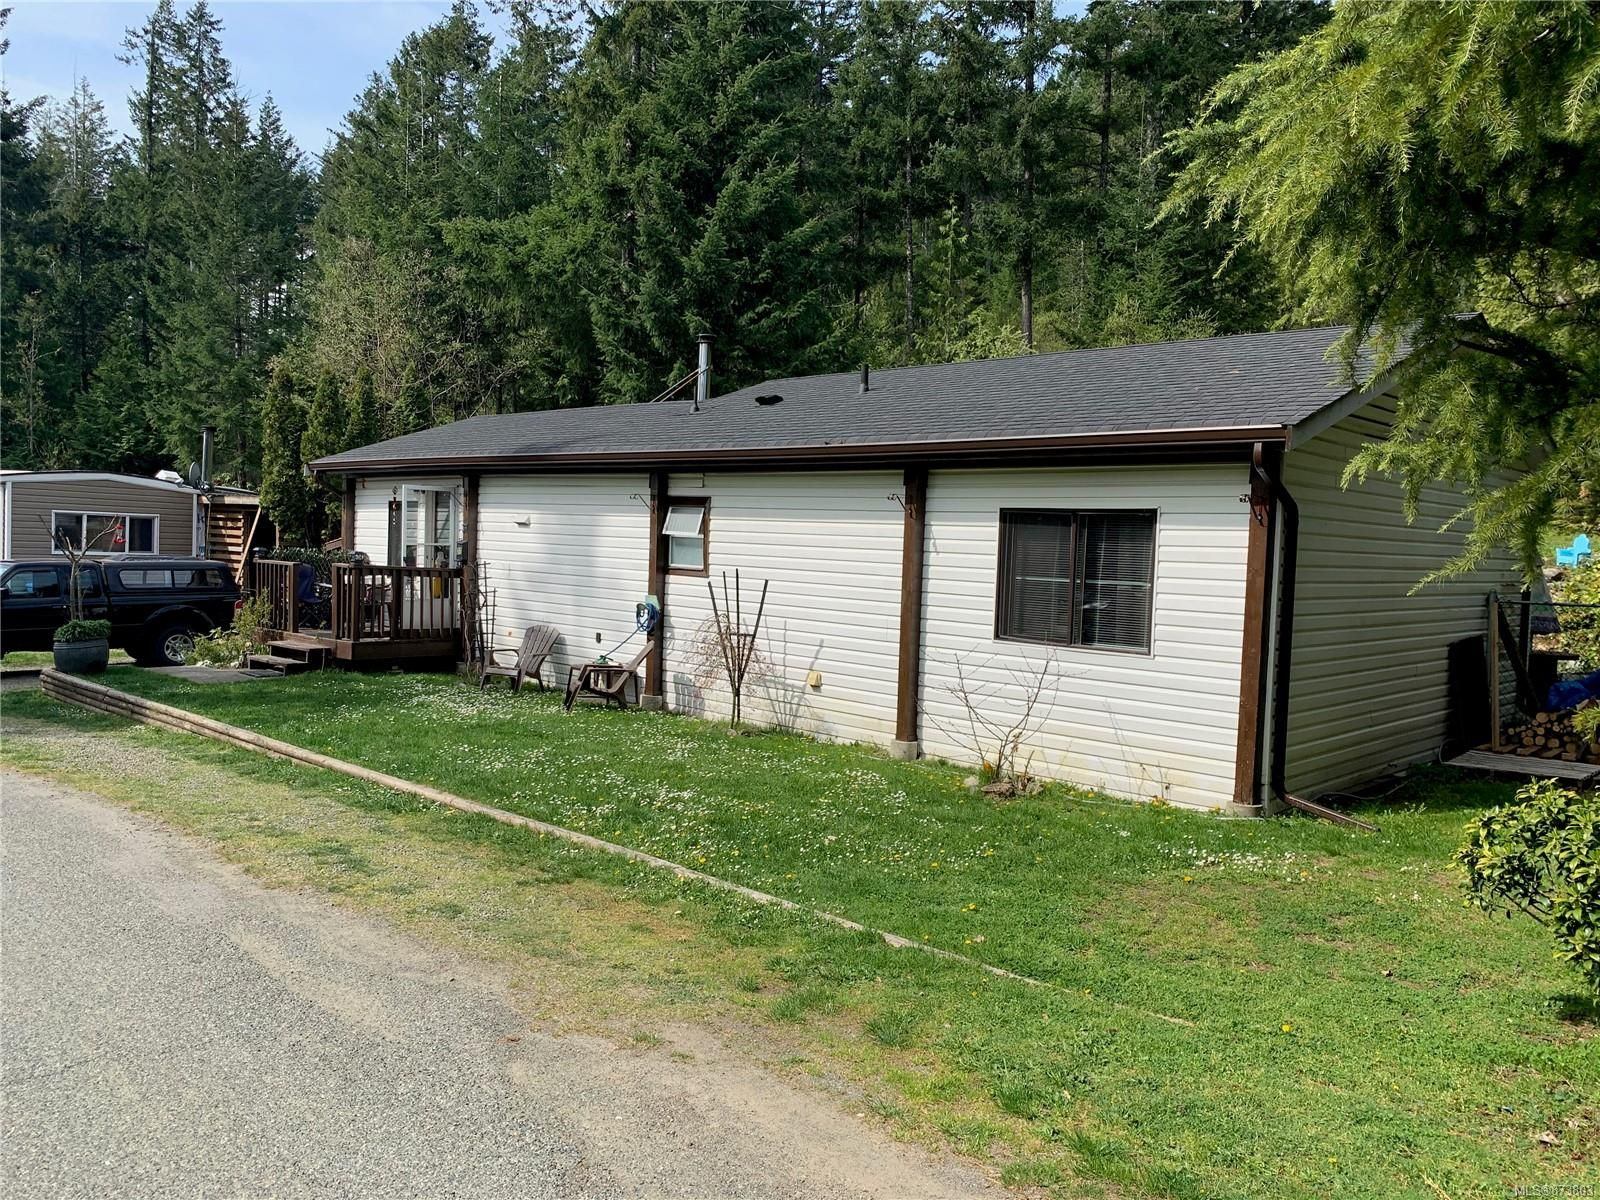 Main Photo: B37 920 Whittaker Rd in : ML Malahat Proper Manufactured Home for sale (Malahat & Area)  : MLS®# 873803